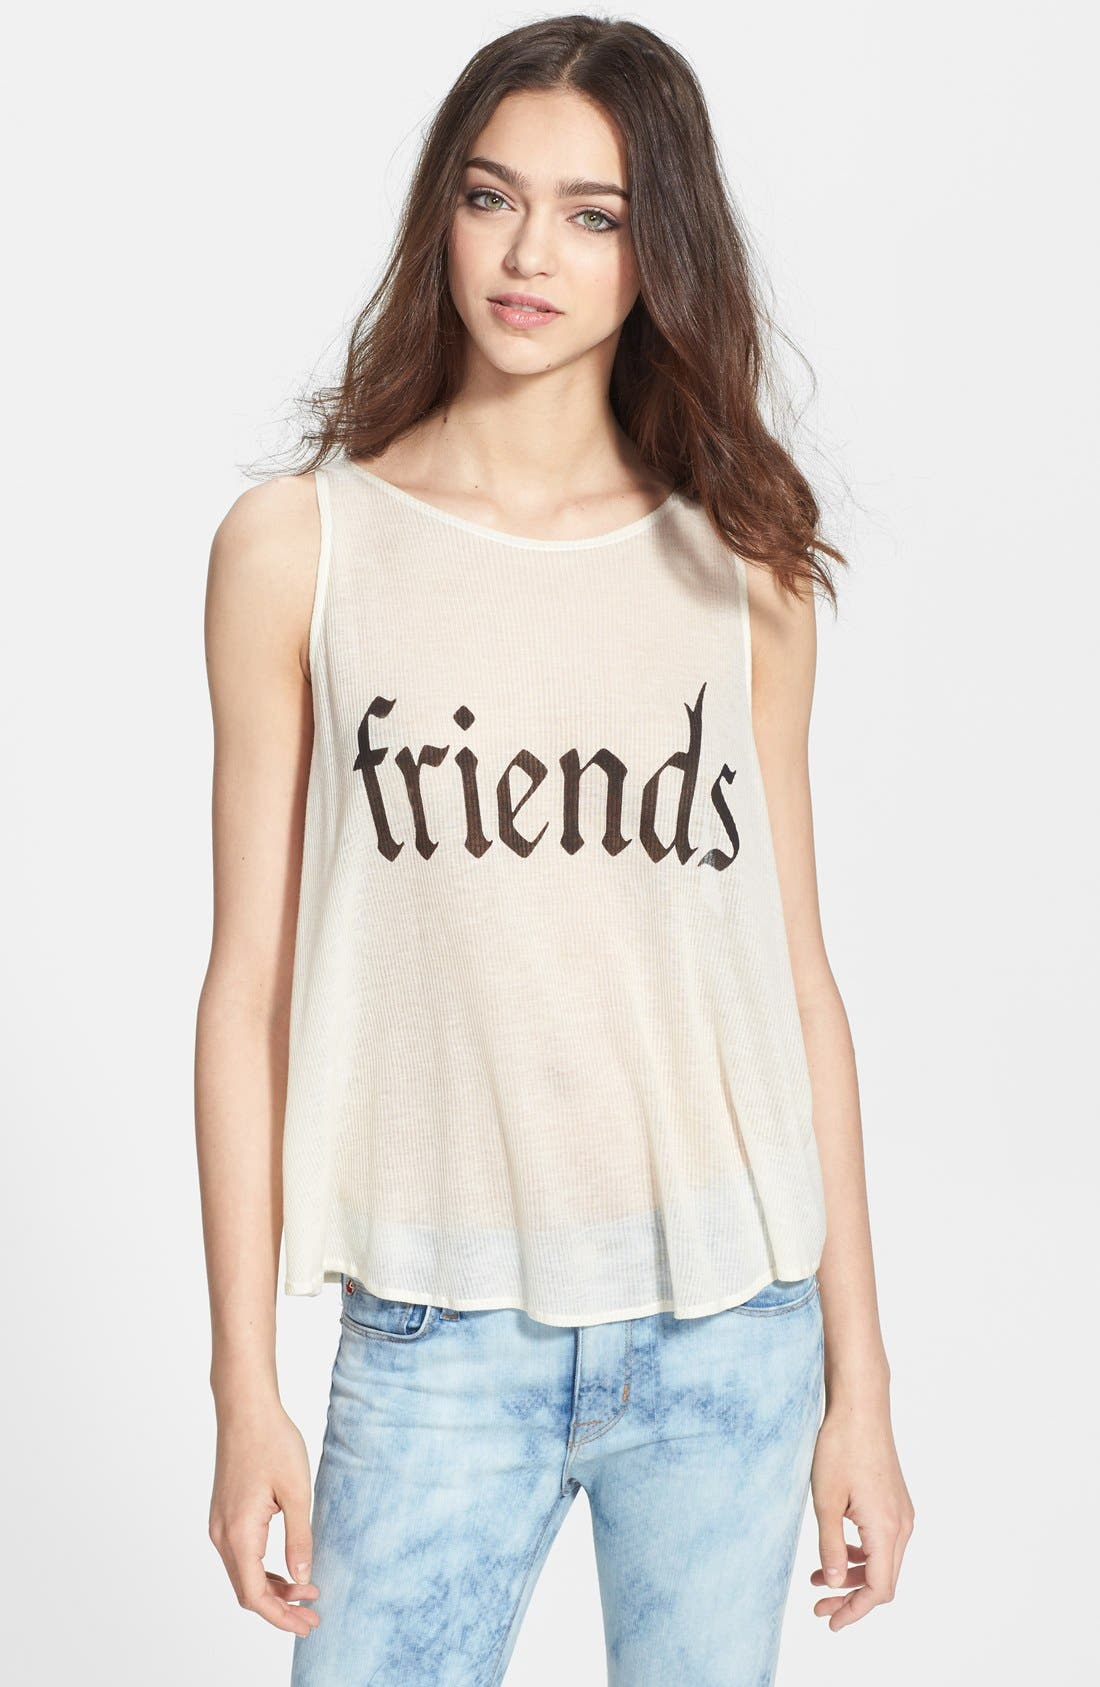 Alternate Image 1 Selected - Wildfox 'Friends' Sheer Ribbed Tank